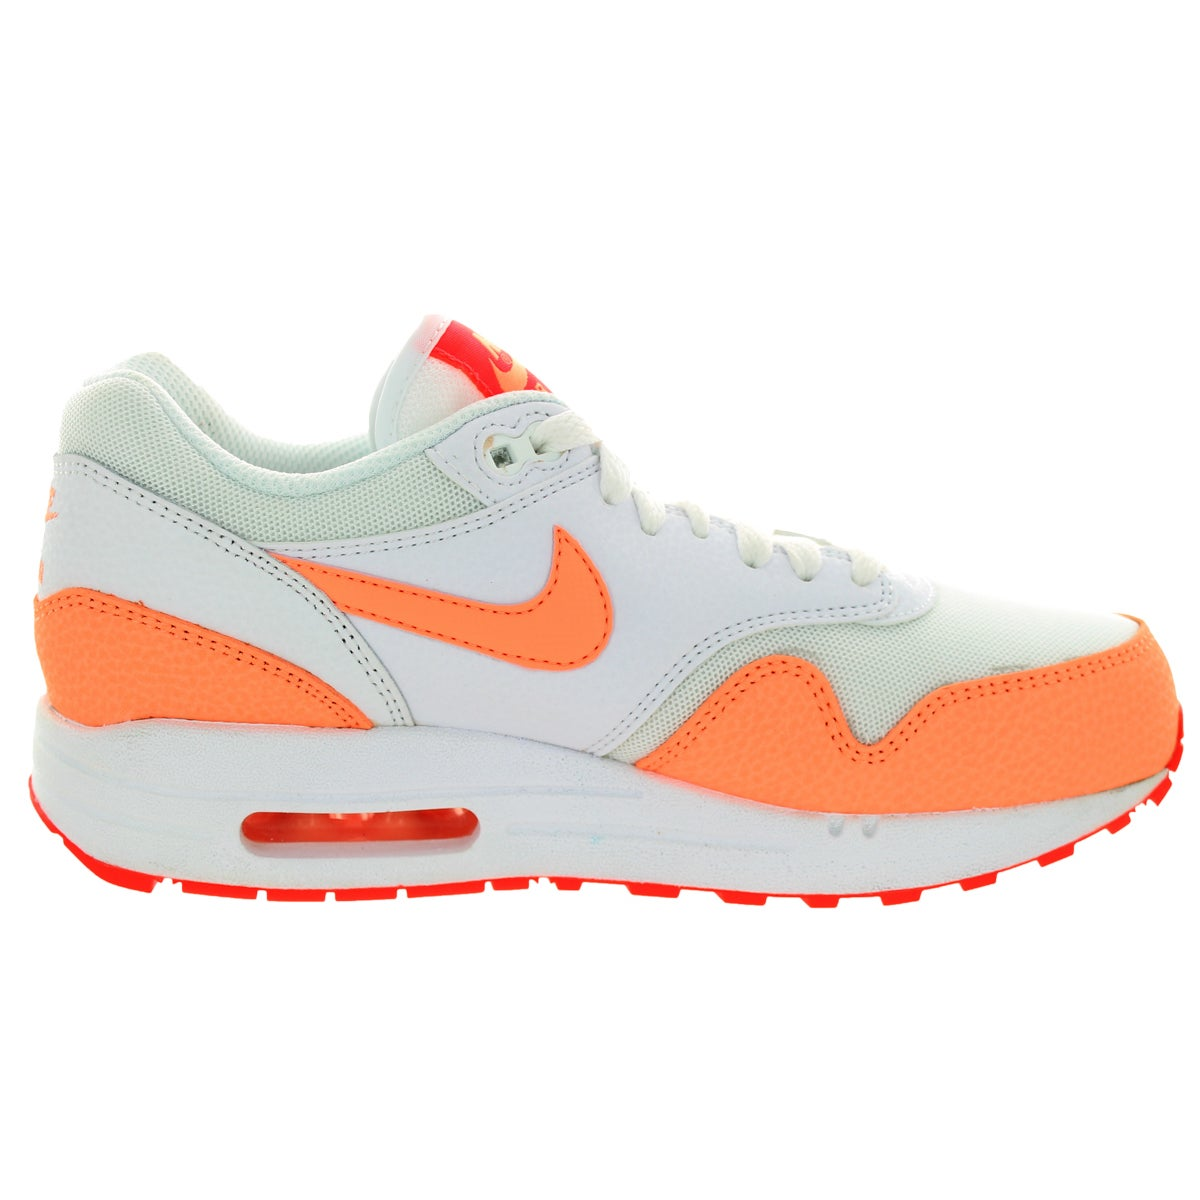 super popular 7e792 77a94 Shop Nike Women s Air Max 1 Essential White Sunset Glow Hot Lava Running  Shoe - Free Shipping Today - Overstock - 12322518